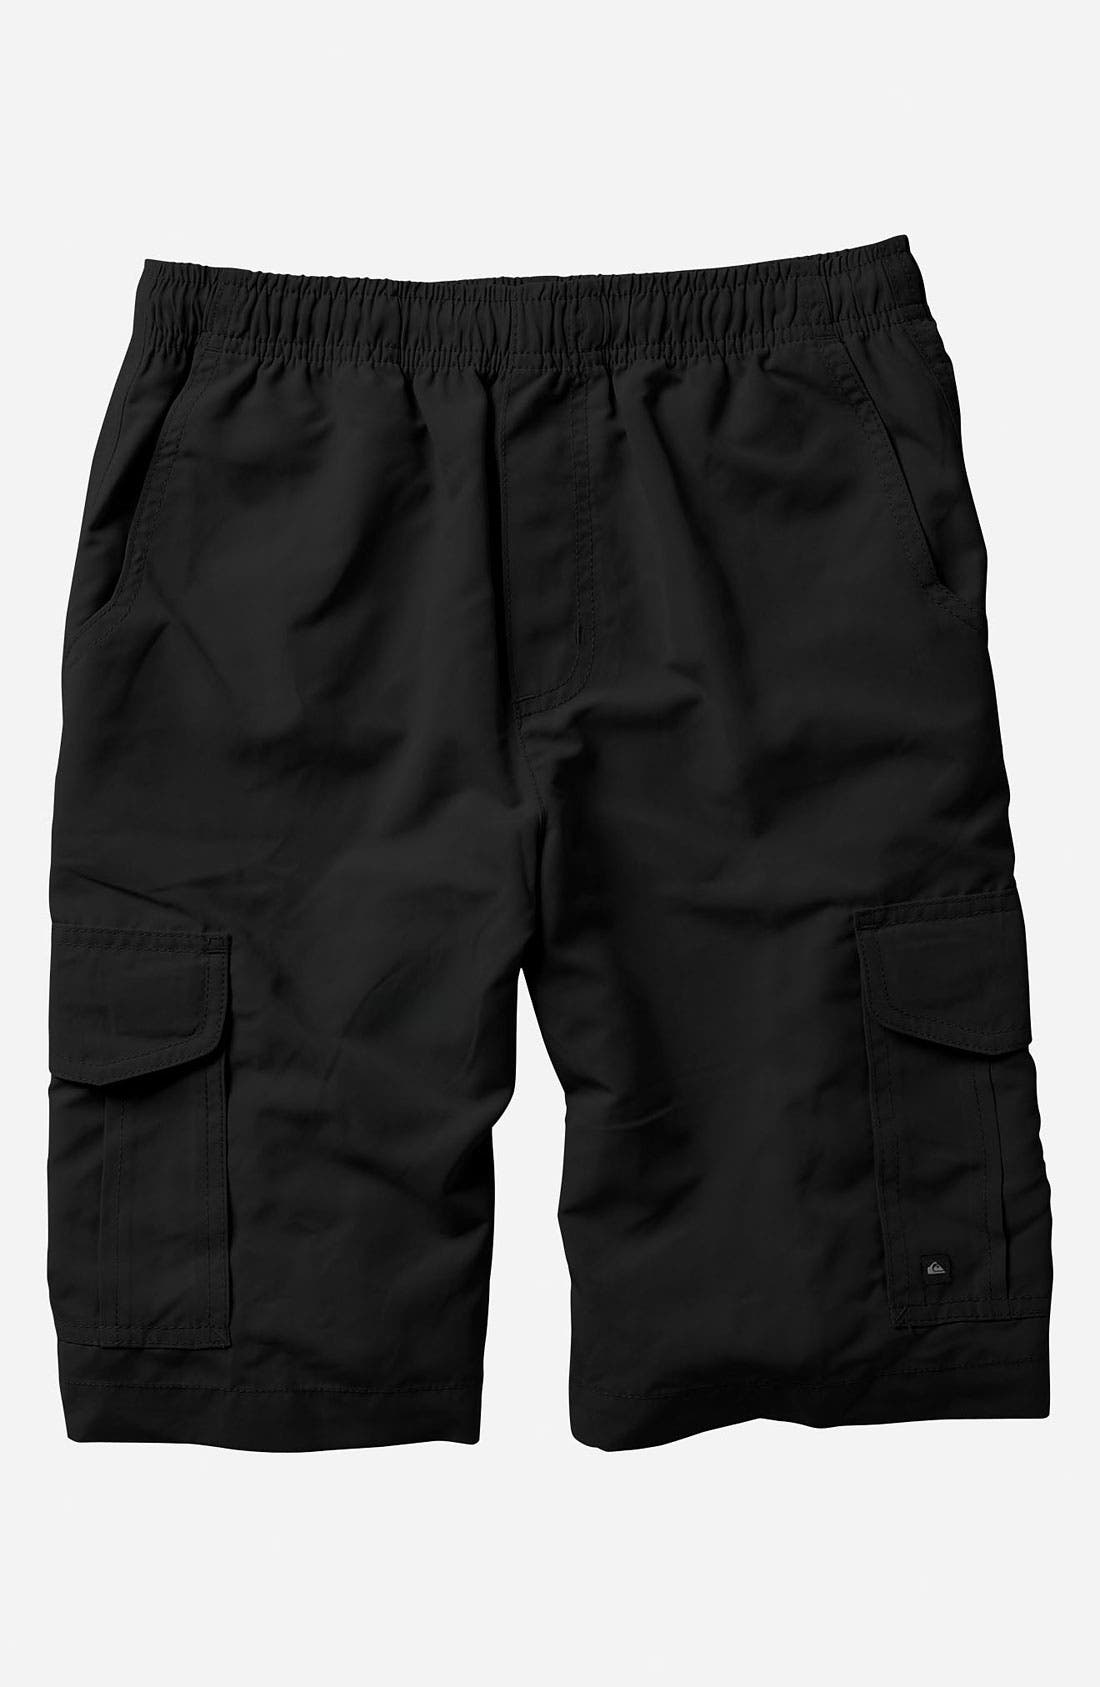 Alternate Image 1 Selected - Quiksilver 'Stylo' Cargo Shorts (Big Boys)